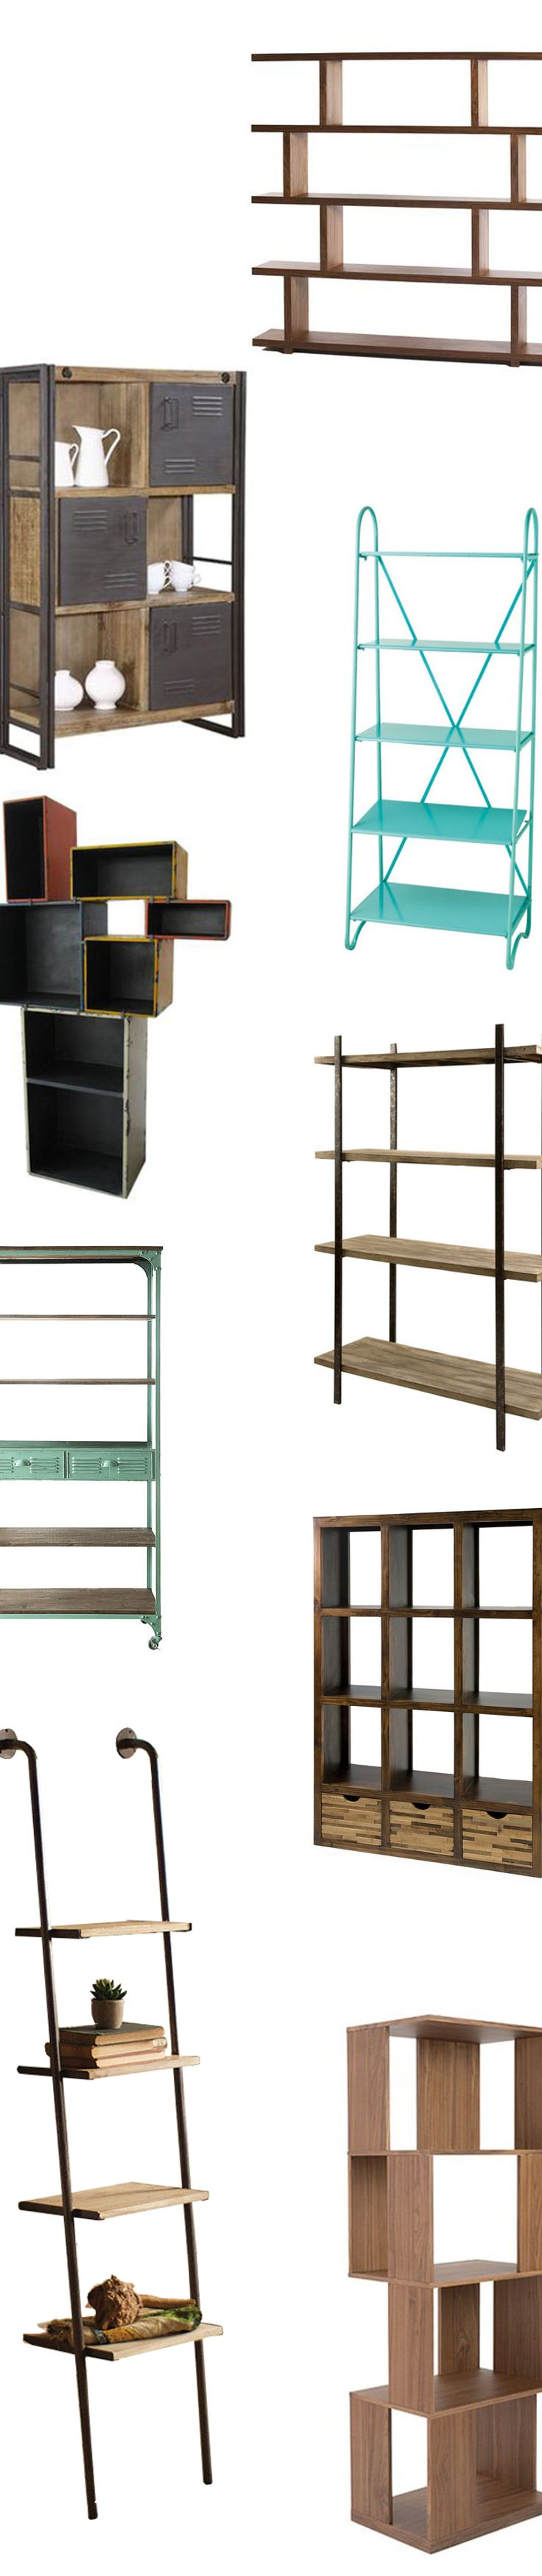 best 25+ locker shelves ideas on pinterest | diy locker shelf